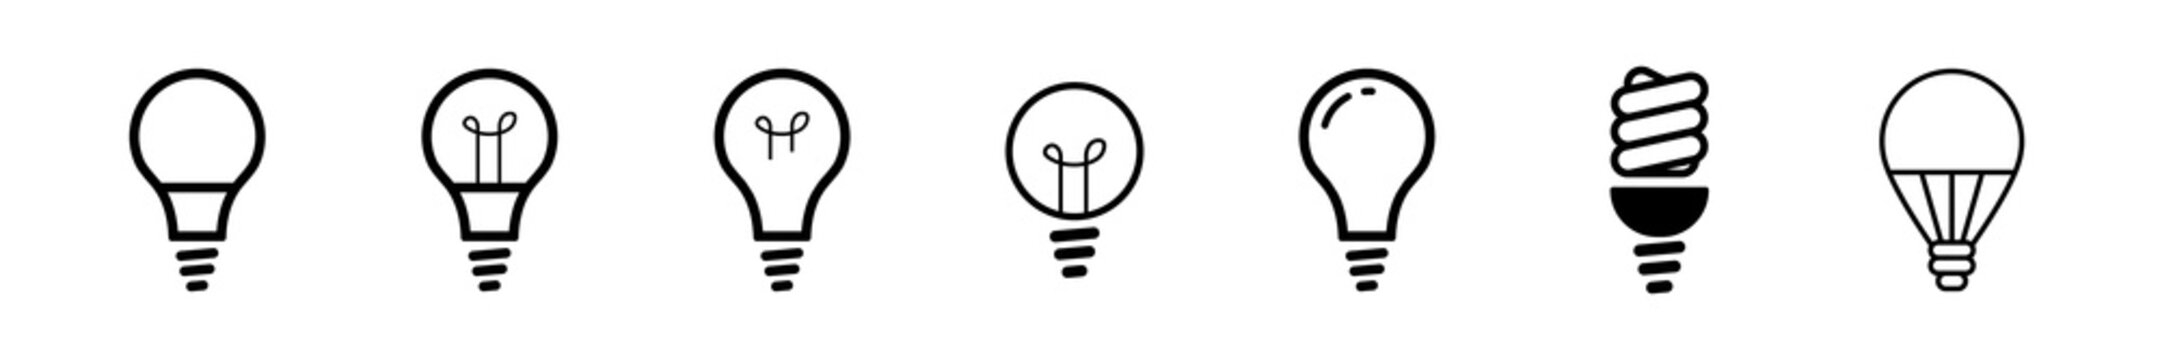 Light bulb icons thin line art set. Black vector symbols isolated on white. Set of different types of bulbs